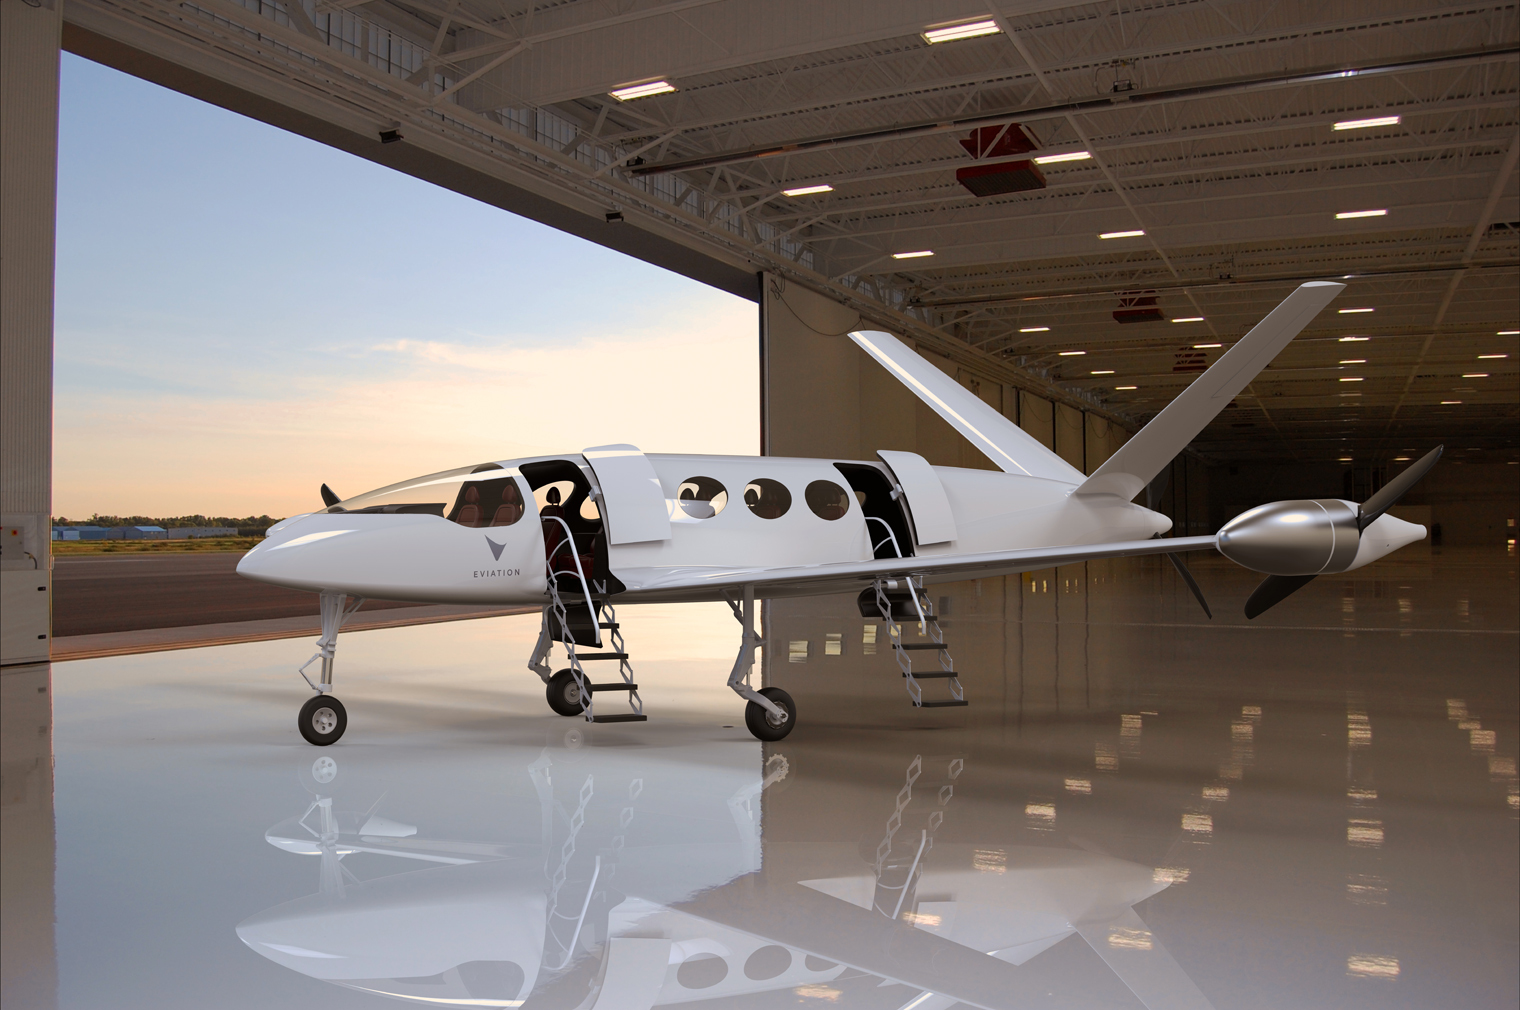 Eviation electric aircraft designed to take 9 passengers up to 1,000km at more than 240kts - all at the price of a train ticket (Photo: Business Wire)